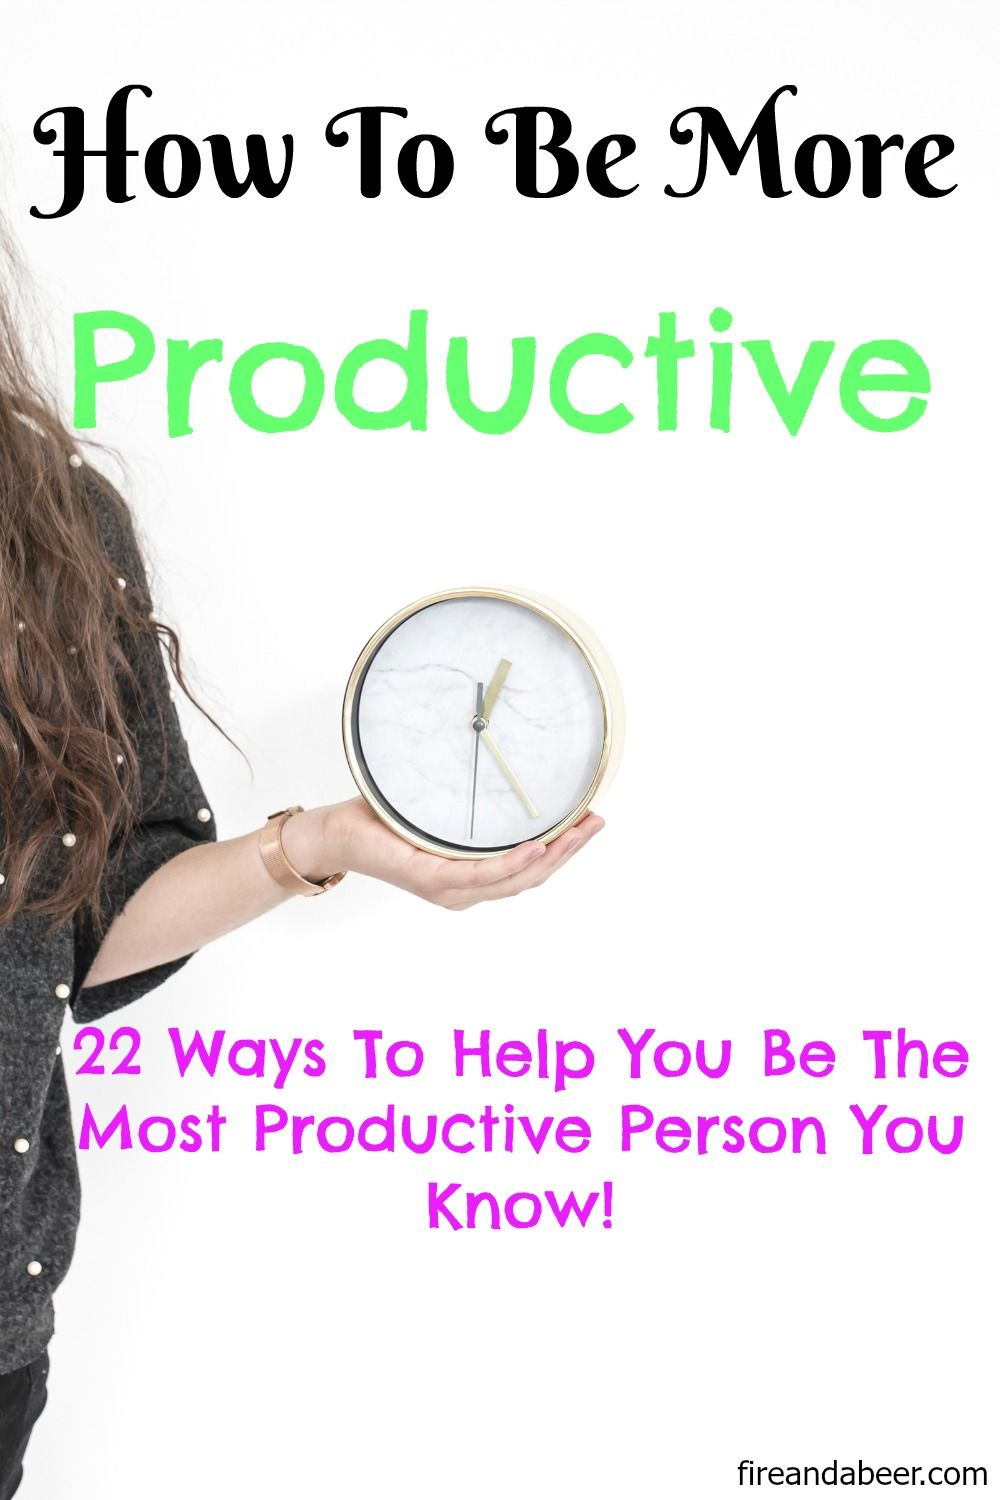 22 ways to help you be more productive letsdoit justdoit top 22 ways to help you be more productive letsdoit justdoit fandeluxe Gallery